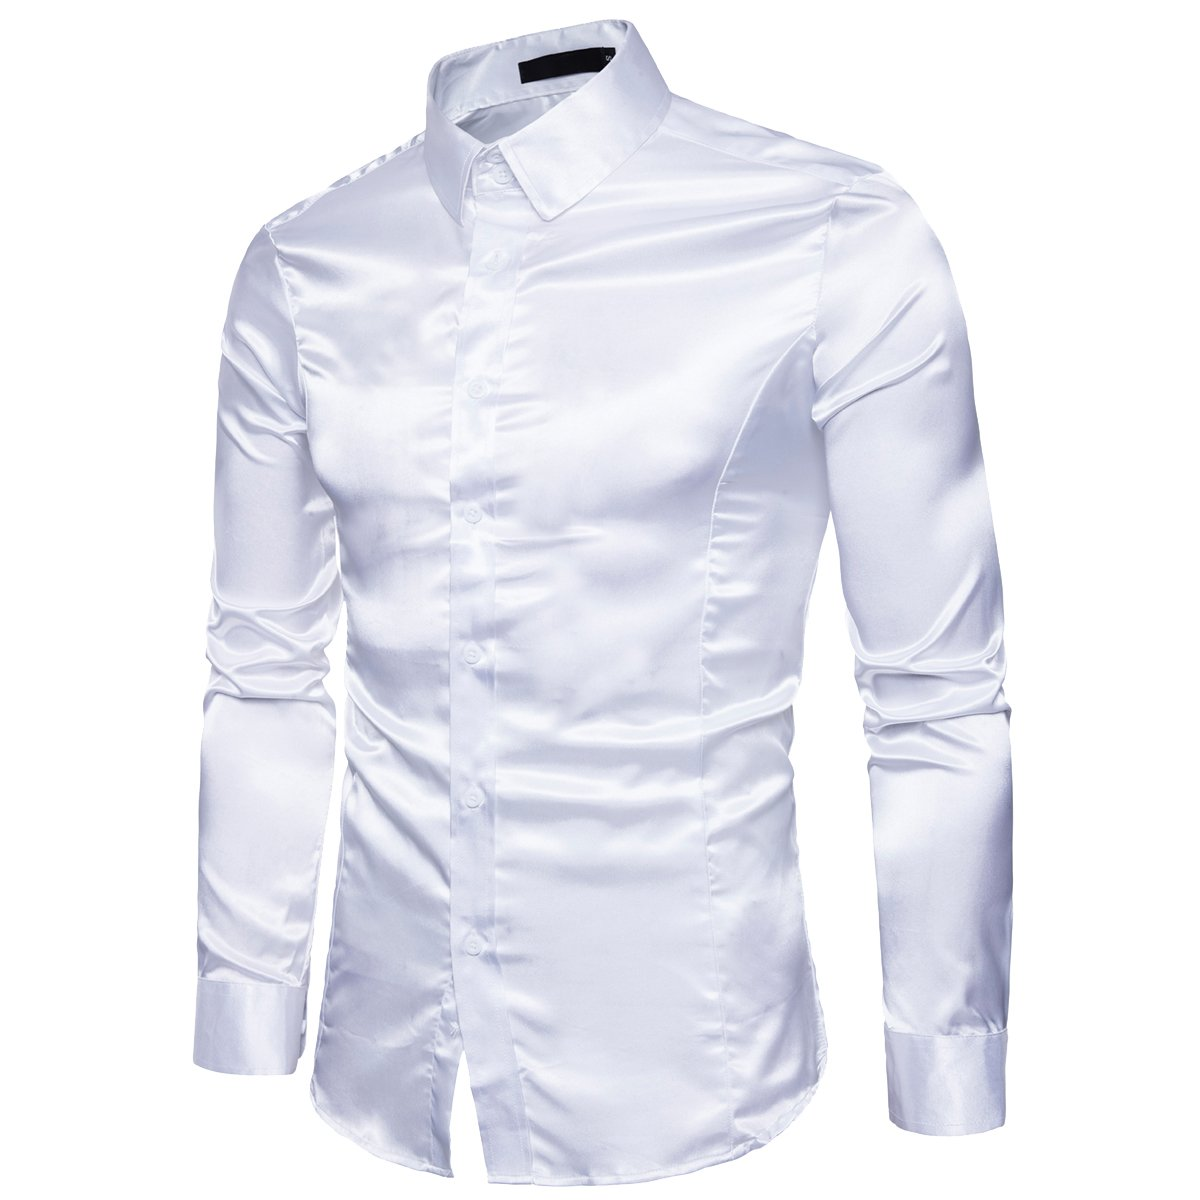 Cottory Mens Night Club Style Satin Weave Pure Color Button Down Shirts